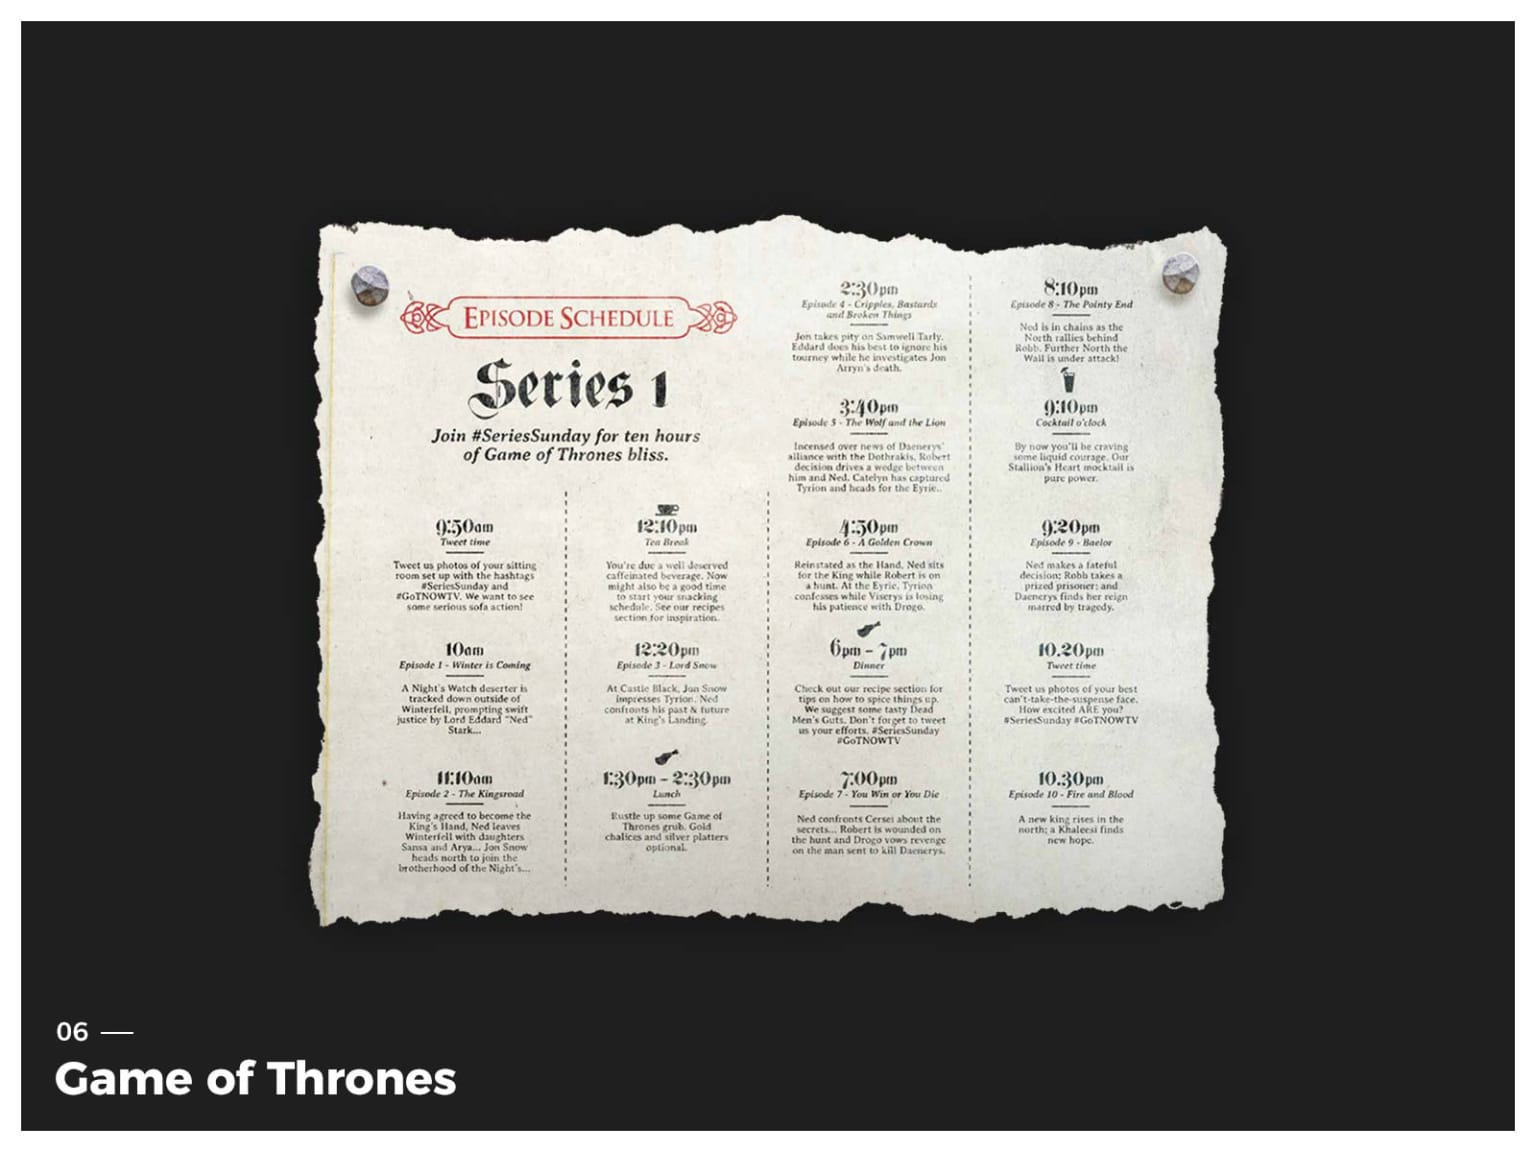 Game of Thrones / NowTV Survival Guides